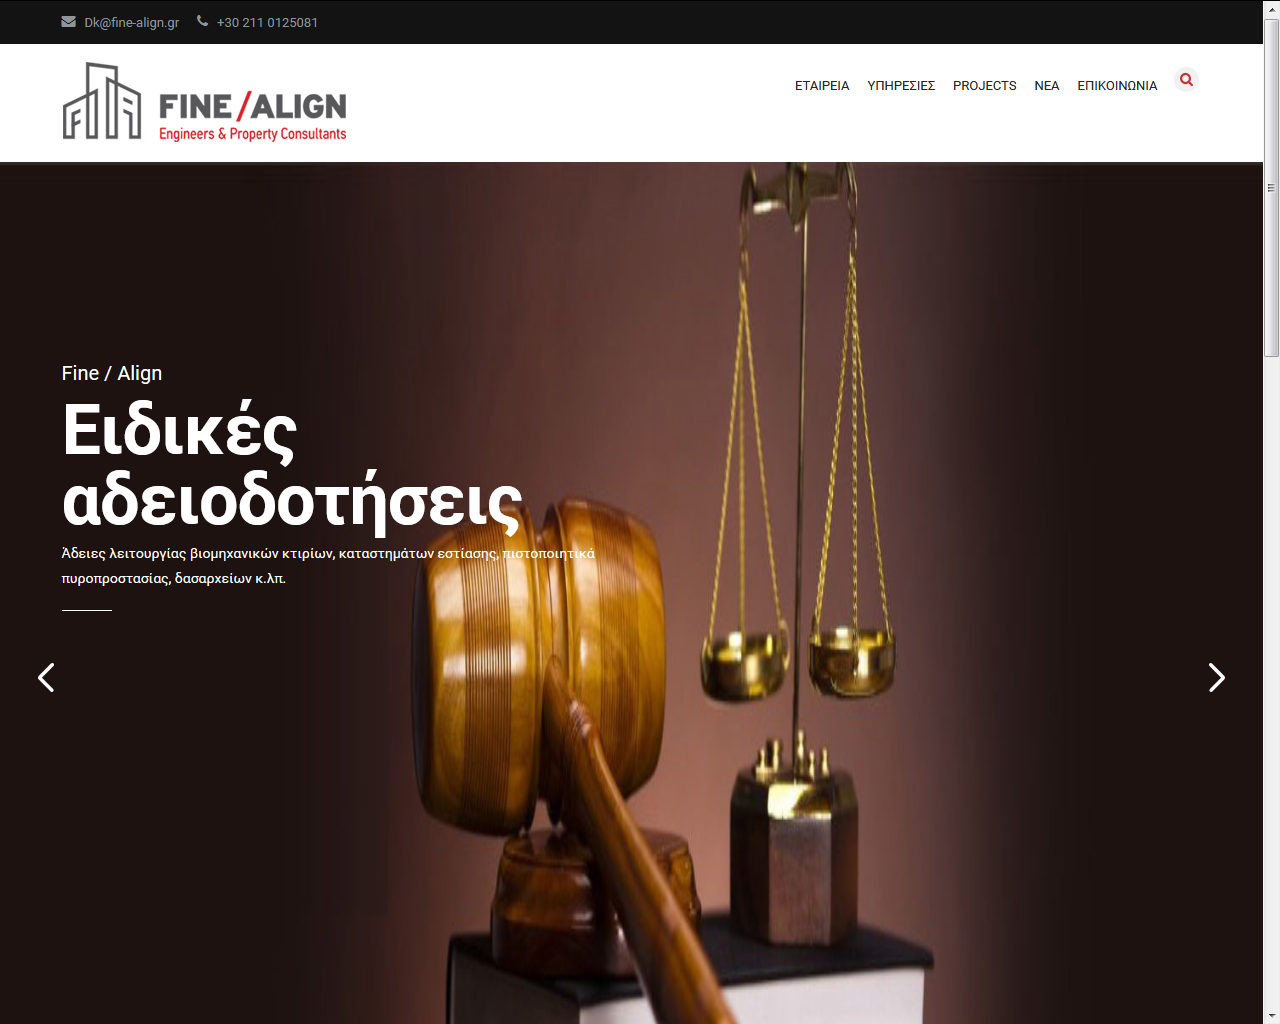 FINE / ALIGN Engineers & Law Consultants website